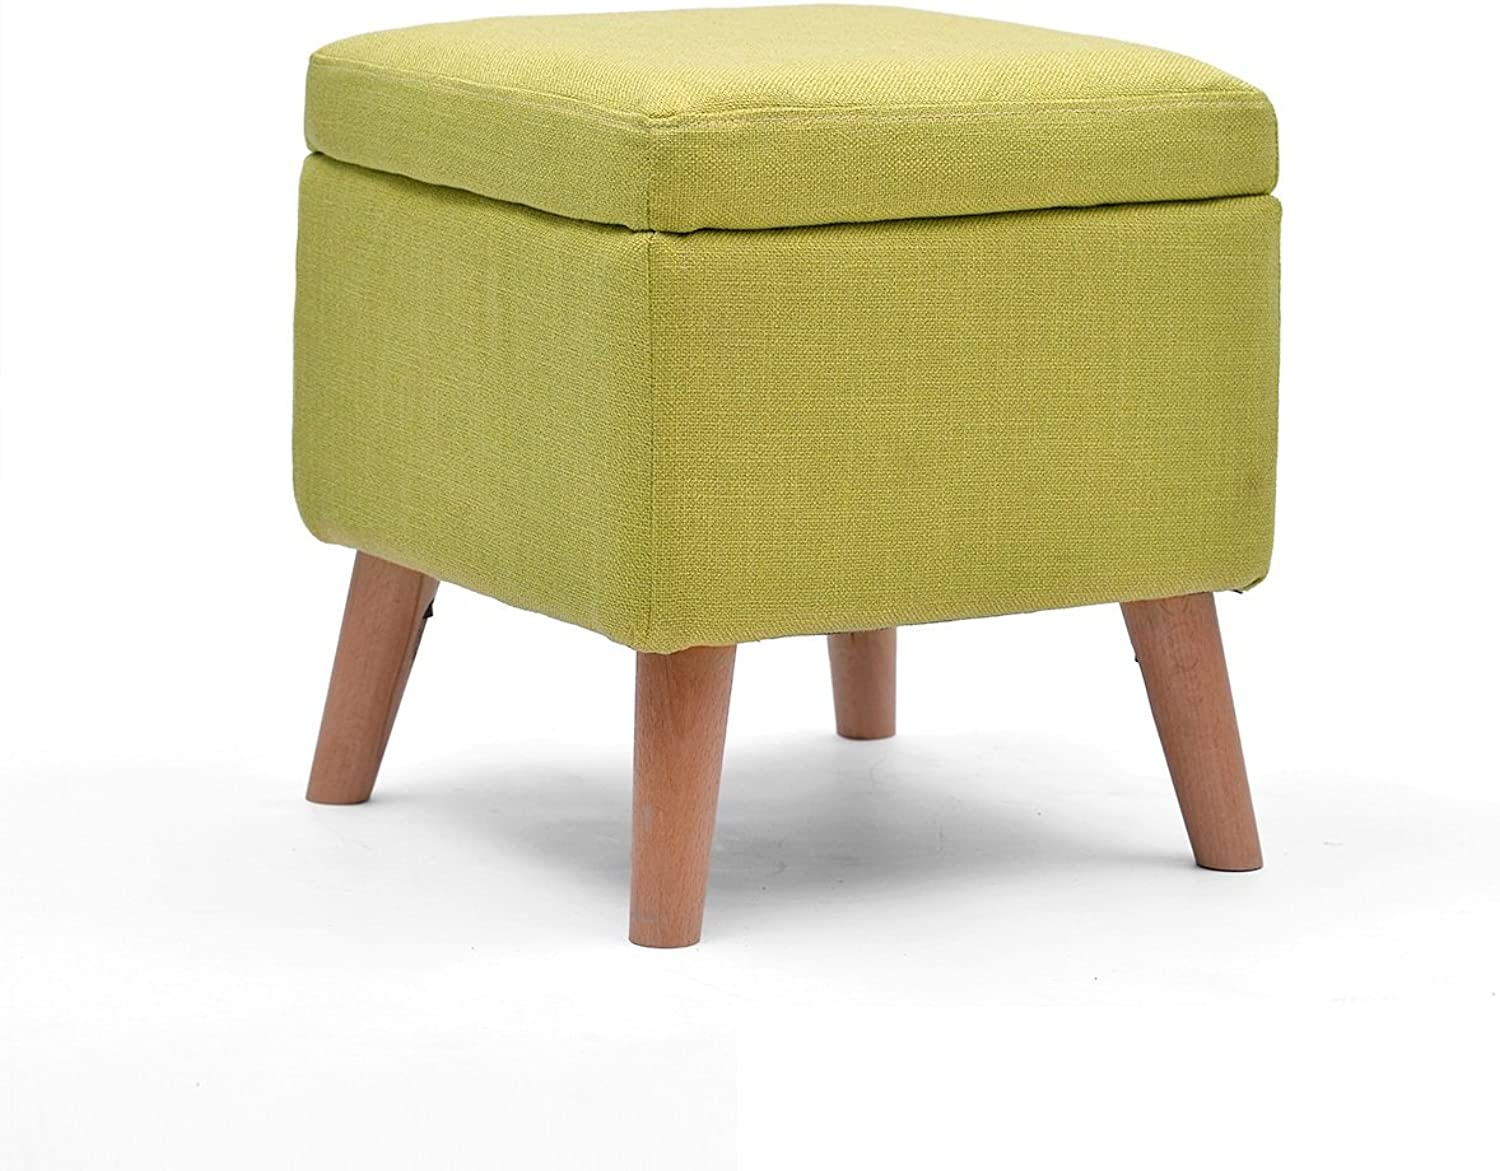 Solid Wood Stool Sofa Foot Stool shoes Storage Stool Nail Stool Sofa Stool Bed Stool Dressing Stool Coffee Table Stool Multifunctional Footstool   40  40  42cm (color   Green)